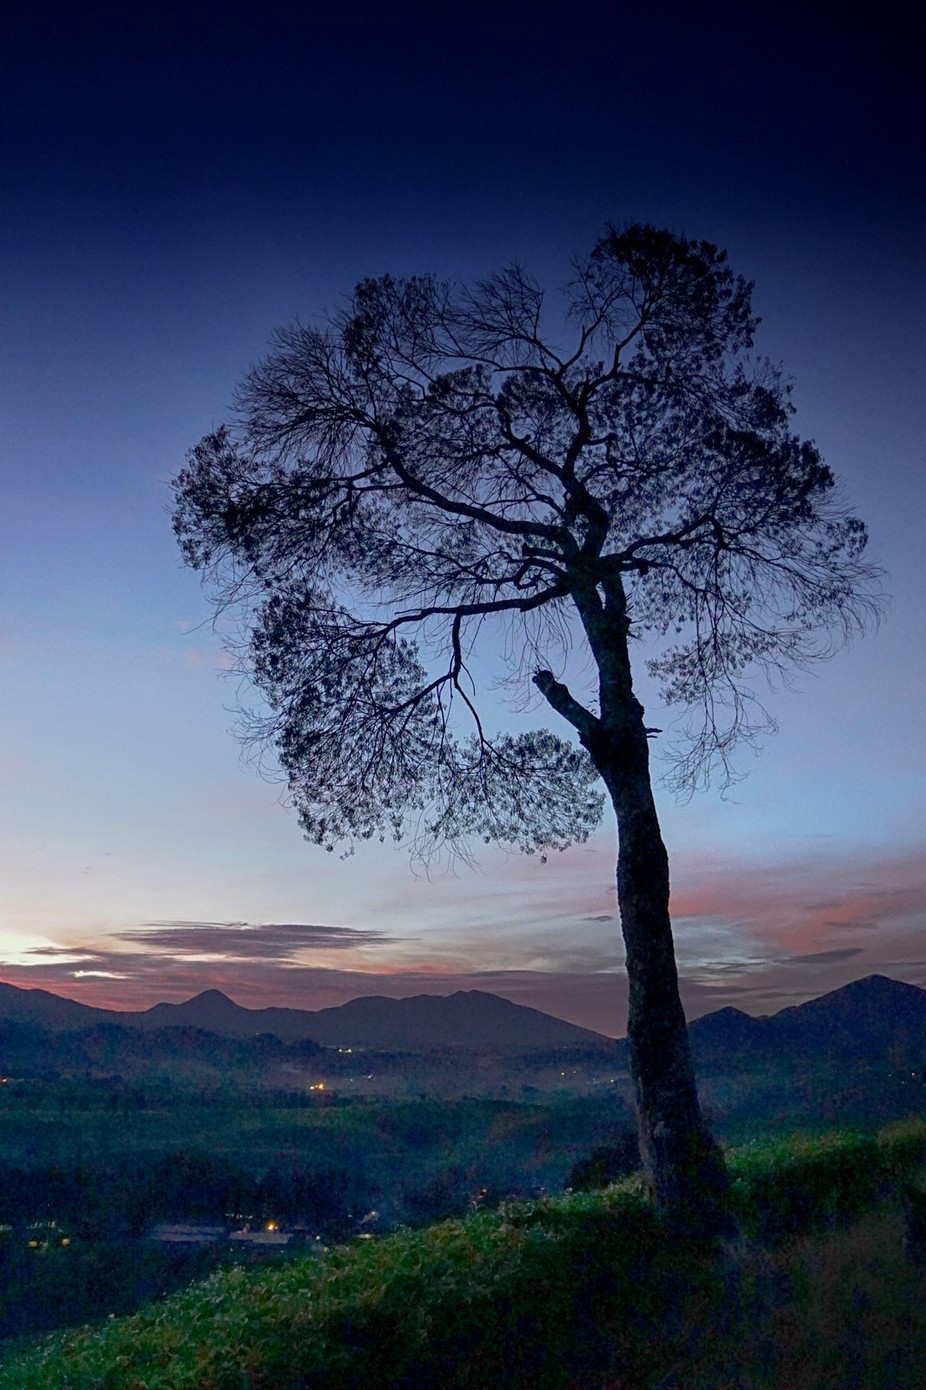 In the Morning by antonb - Tree Silhouettes Photo Contest